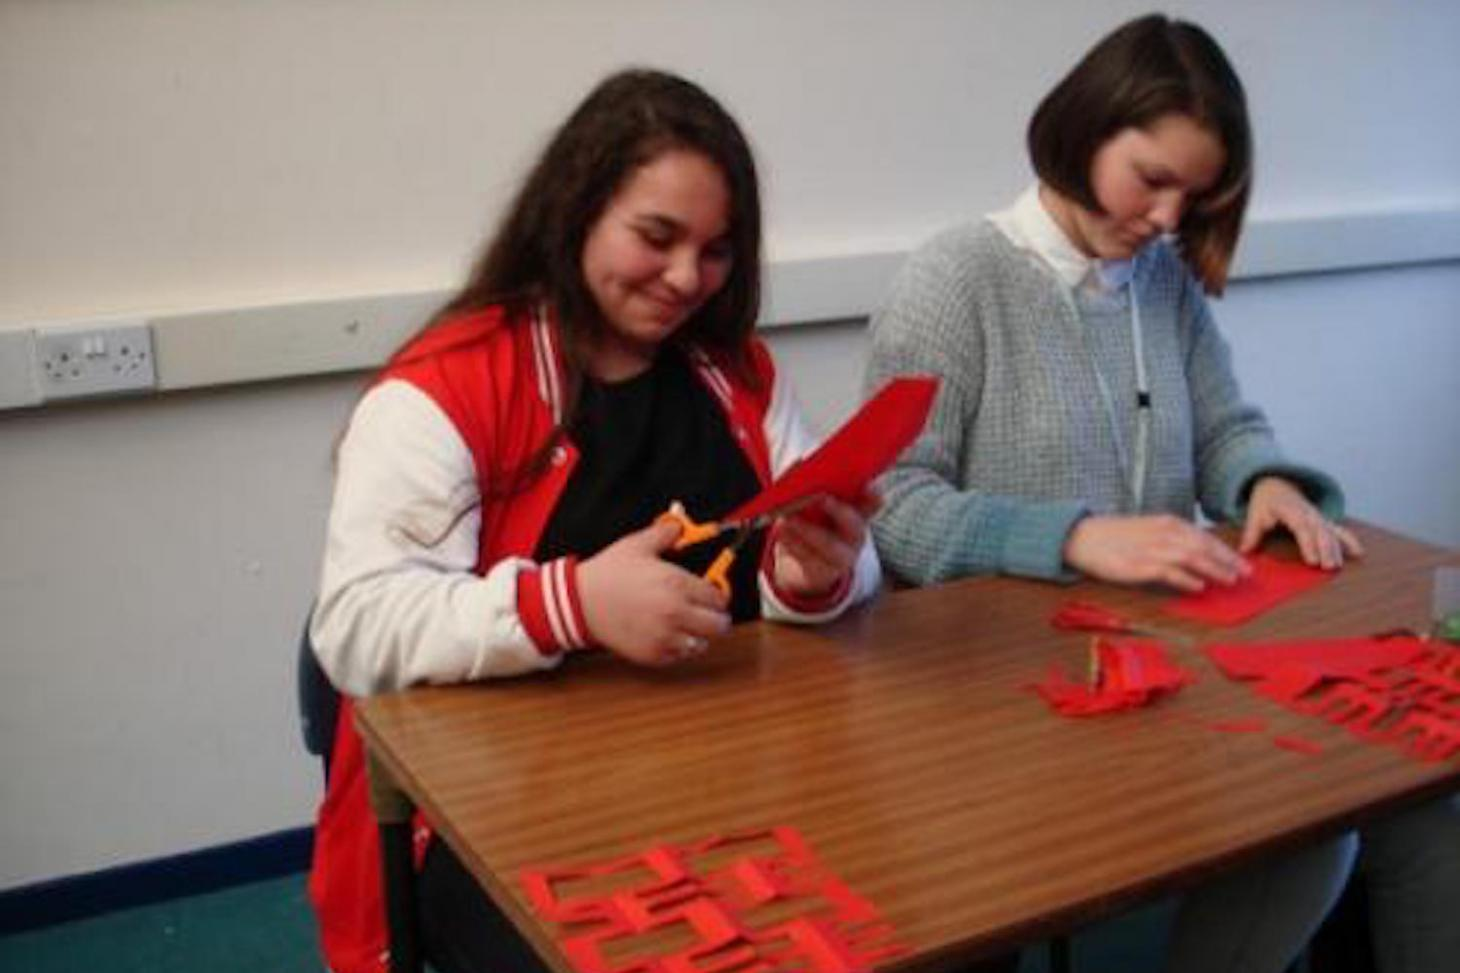 Students carefully cutting out the Chinese character of Xi (meaning 'Happiness')